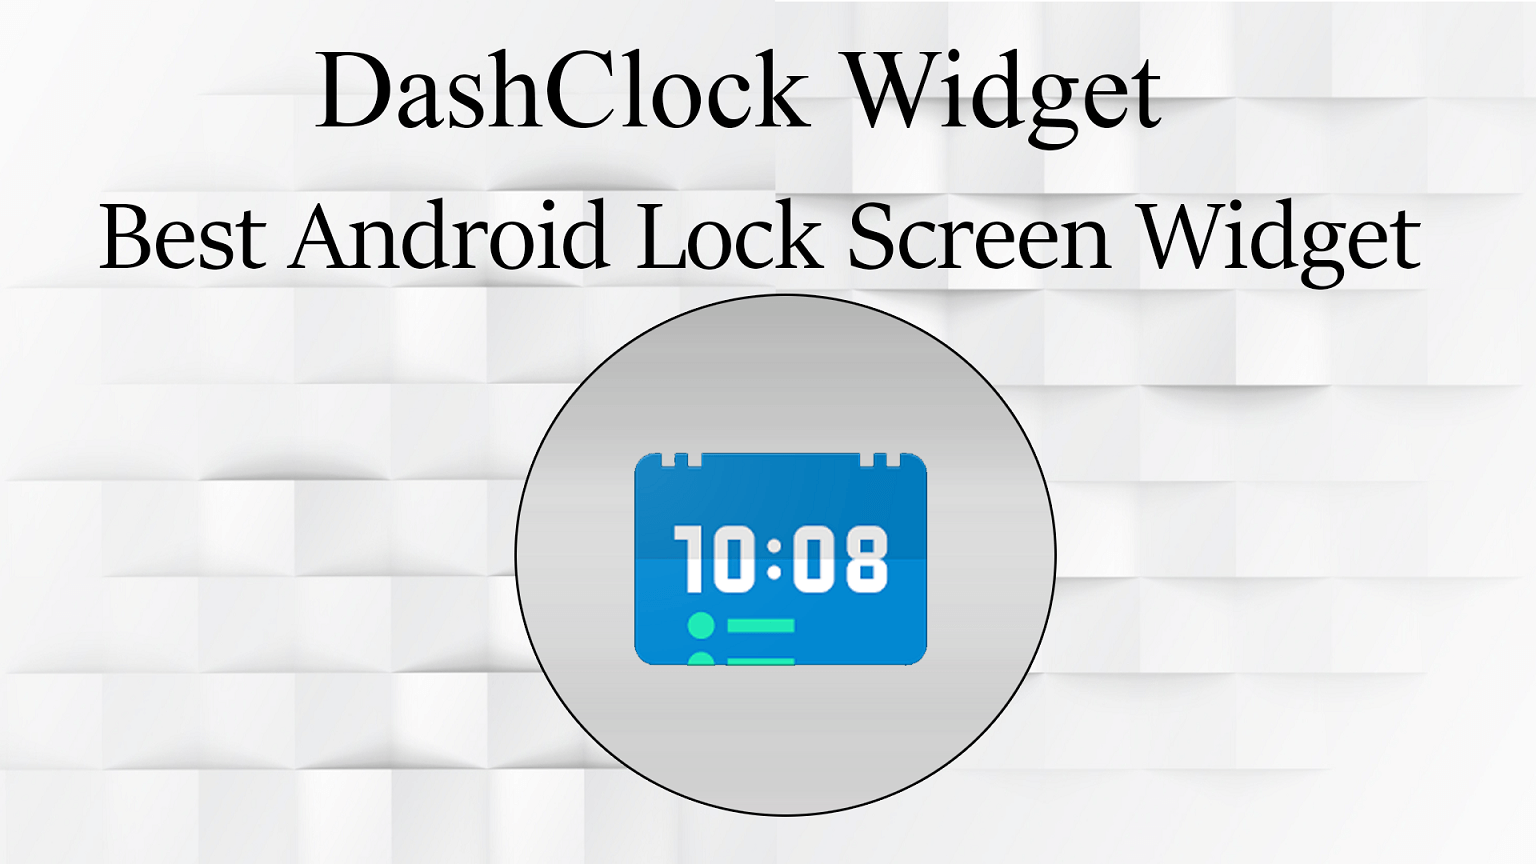 DashClock Widget - Best Android Lock Screen Widget - theandroidportal.com